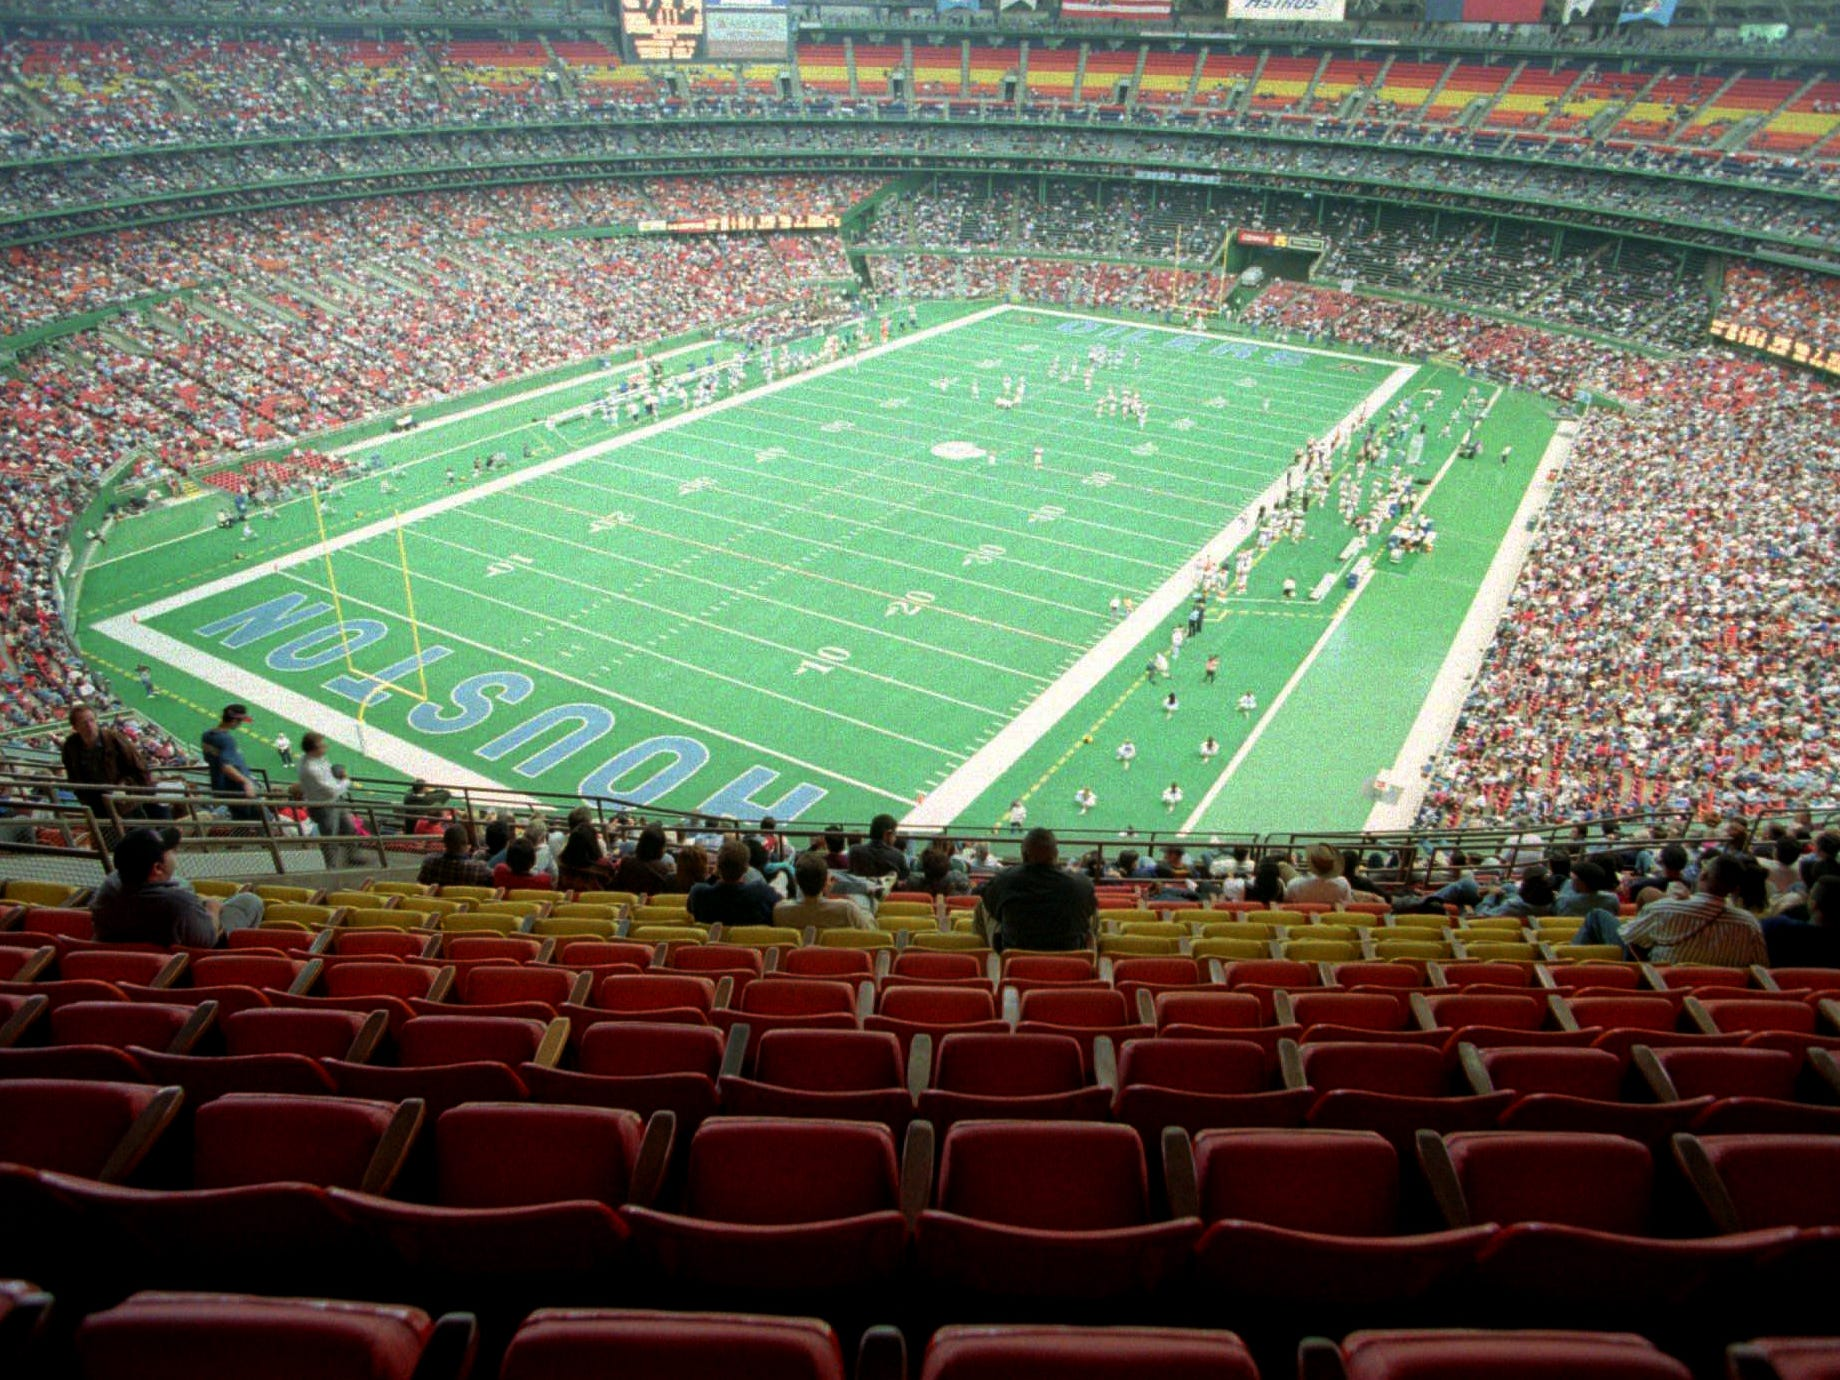 Nearly half the seats were empty in Houston's Astrodome as the Houston Oilers play the Cincinnati Bengals Nov. 12, 1995. Oilers owner Bud Adams has cited lack of fan interest as one of his reasons for moving the team to Nashville, Tenn.